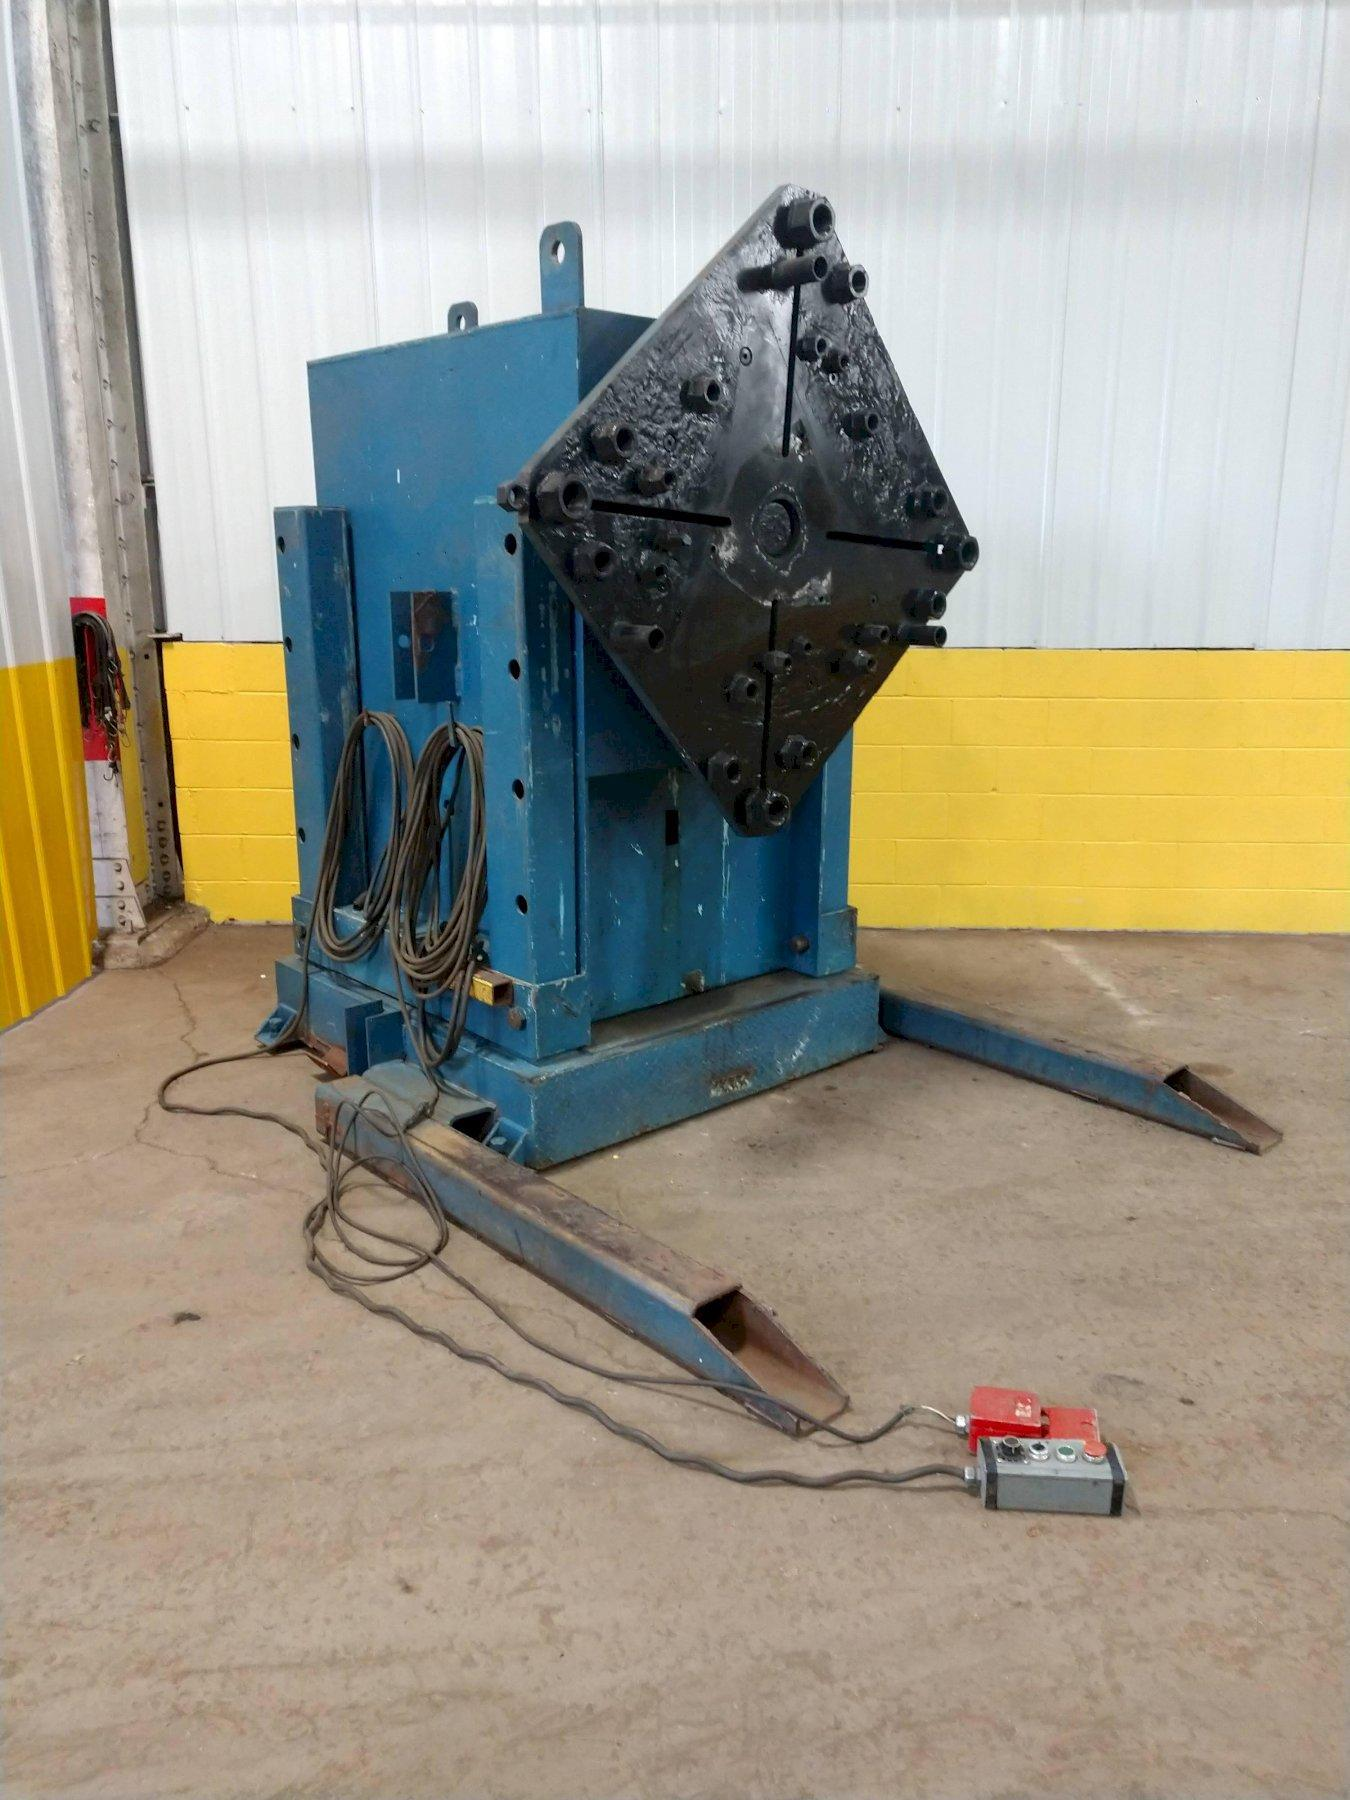 30,000 LBS RANSOME MODEL 15H ROTARY WELDING HEADSTOCK / POSITIONER: STOCK #12590